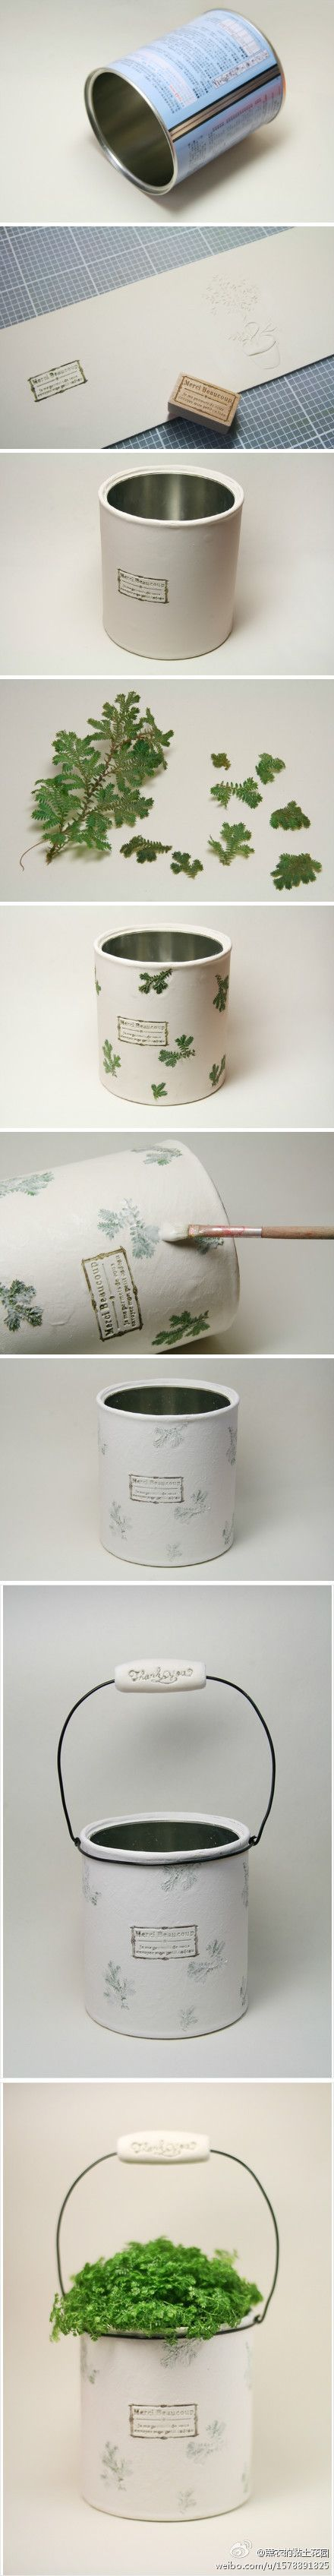 pot with recycled can // lata reciclada en maceta